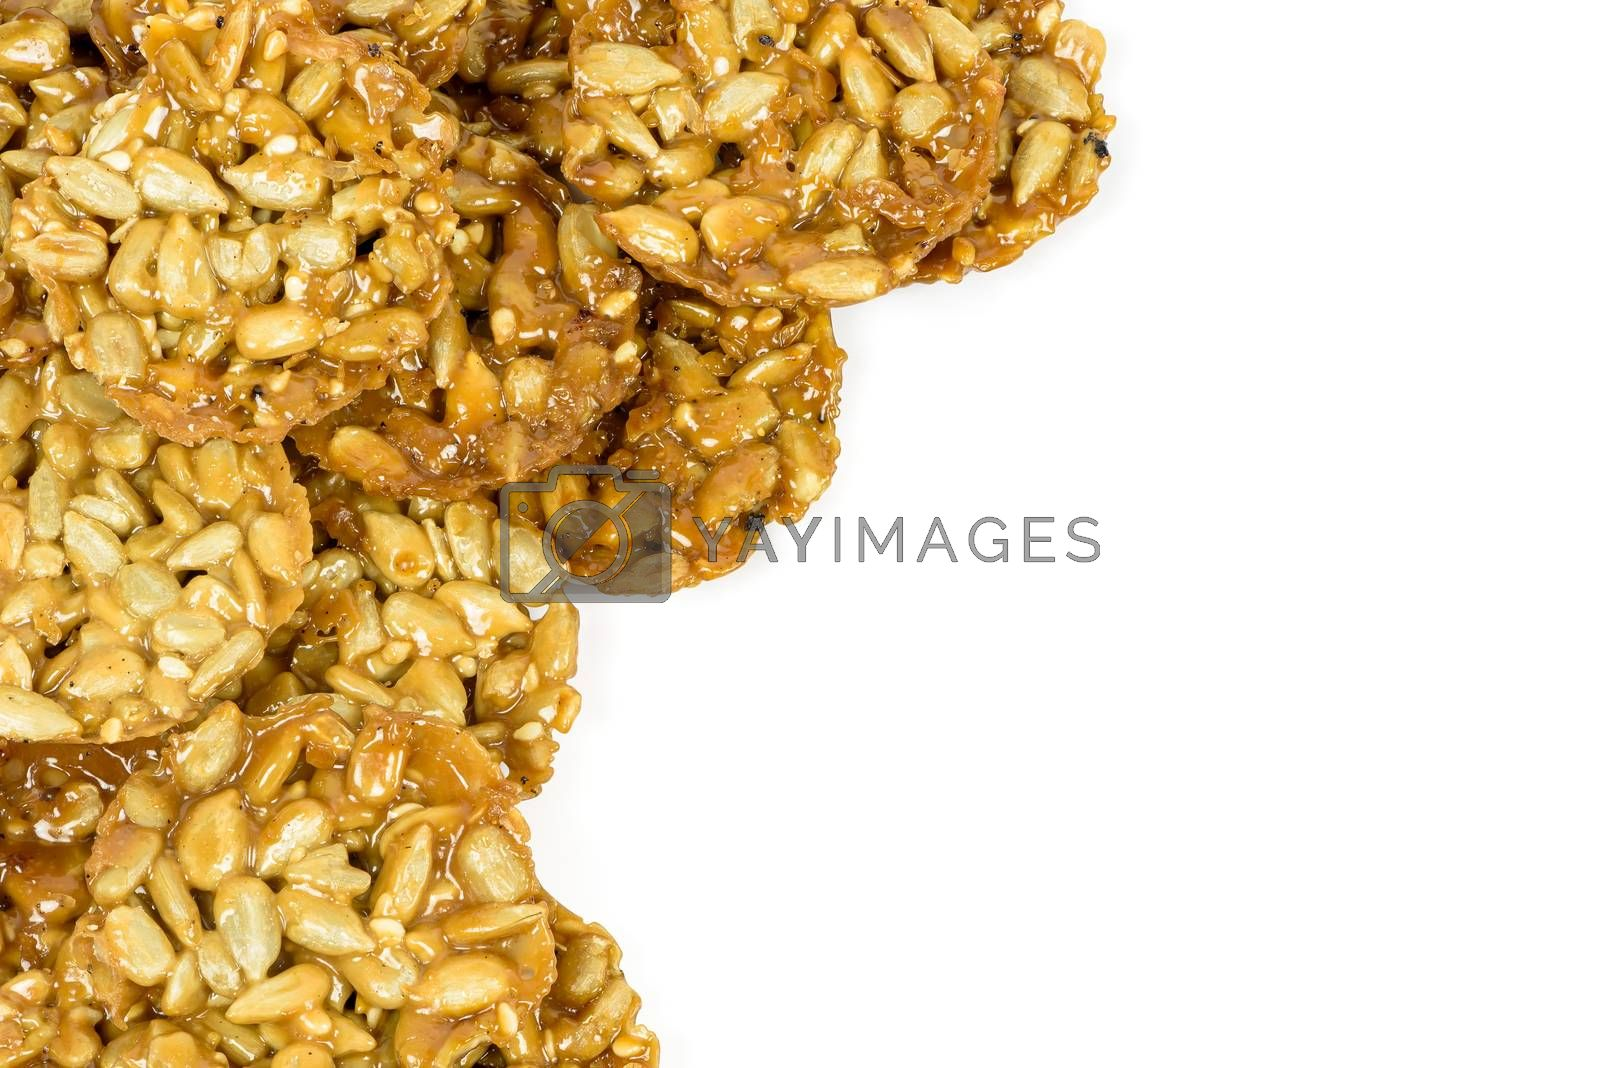 Heap of florentine biscuits as a culinary background with copy space